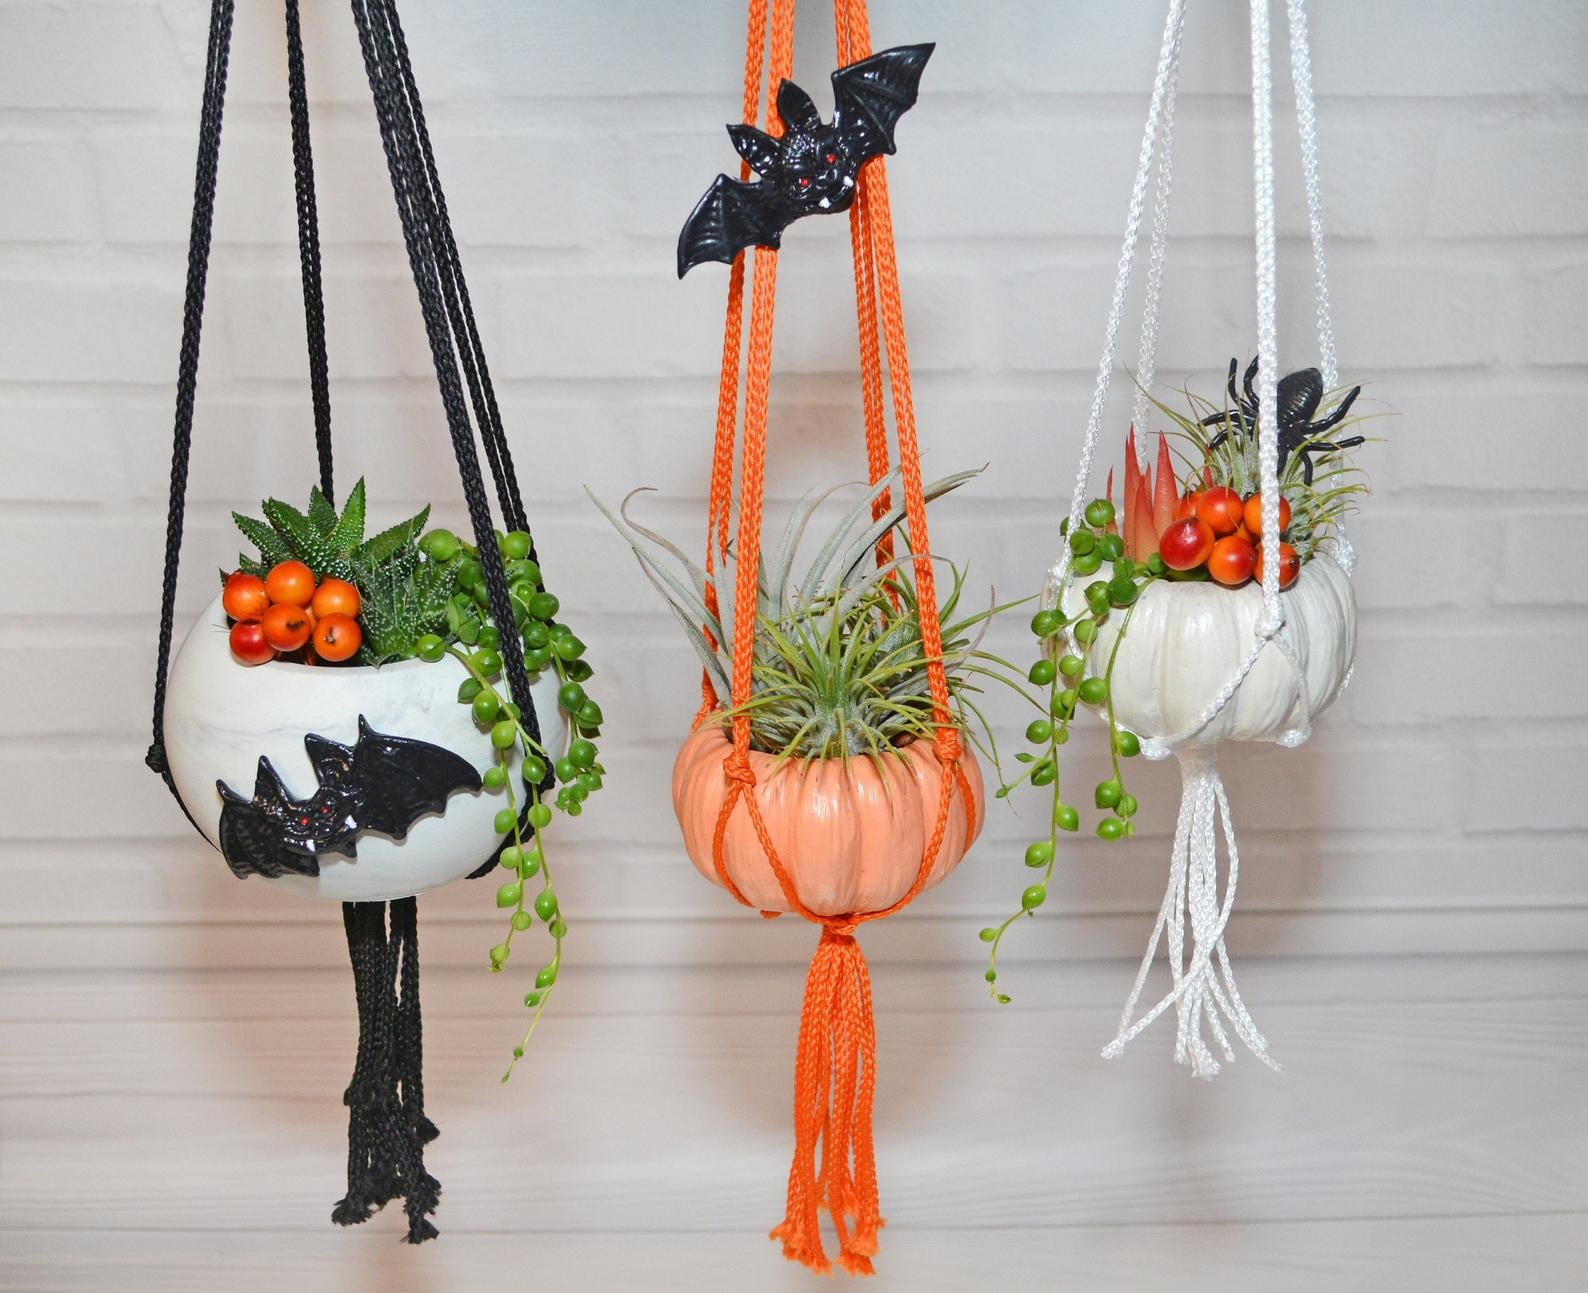 Best Halloween Planters From Etsy 2020 Popsugar Home